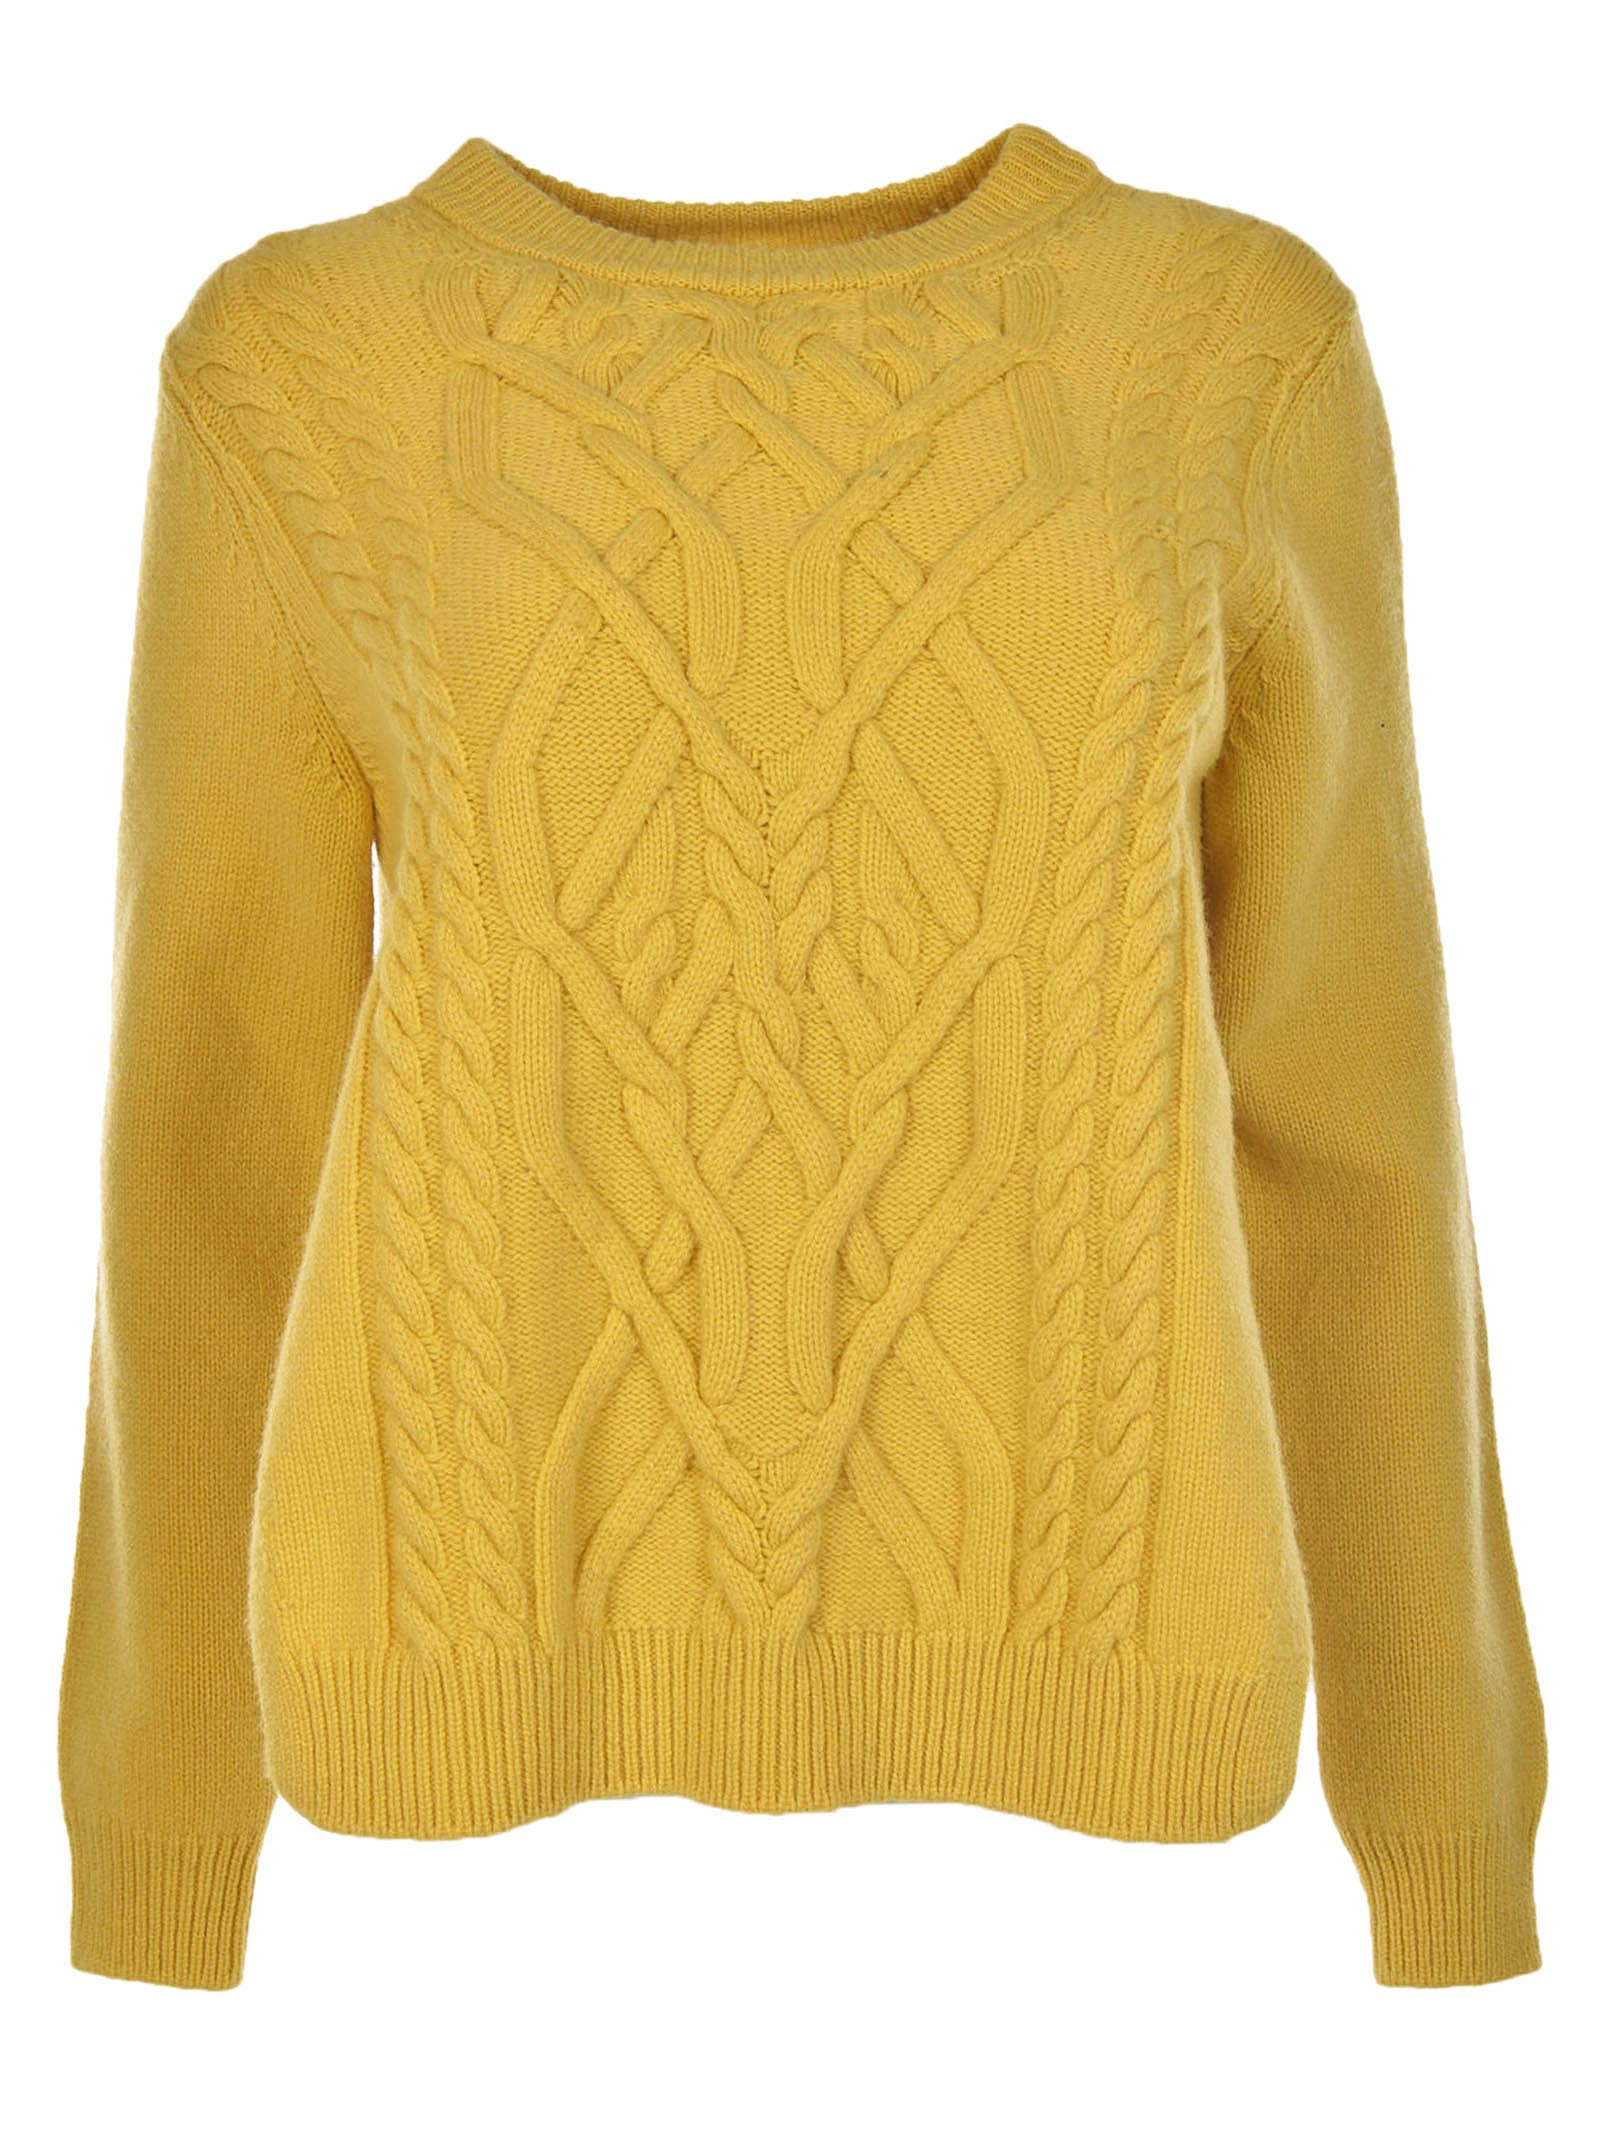 Semicouture Tracy Jumper